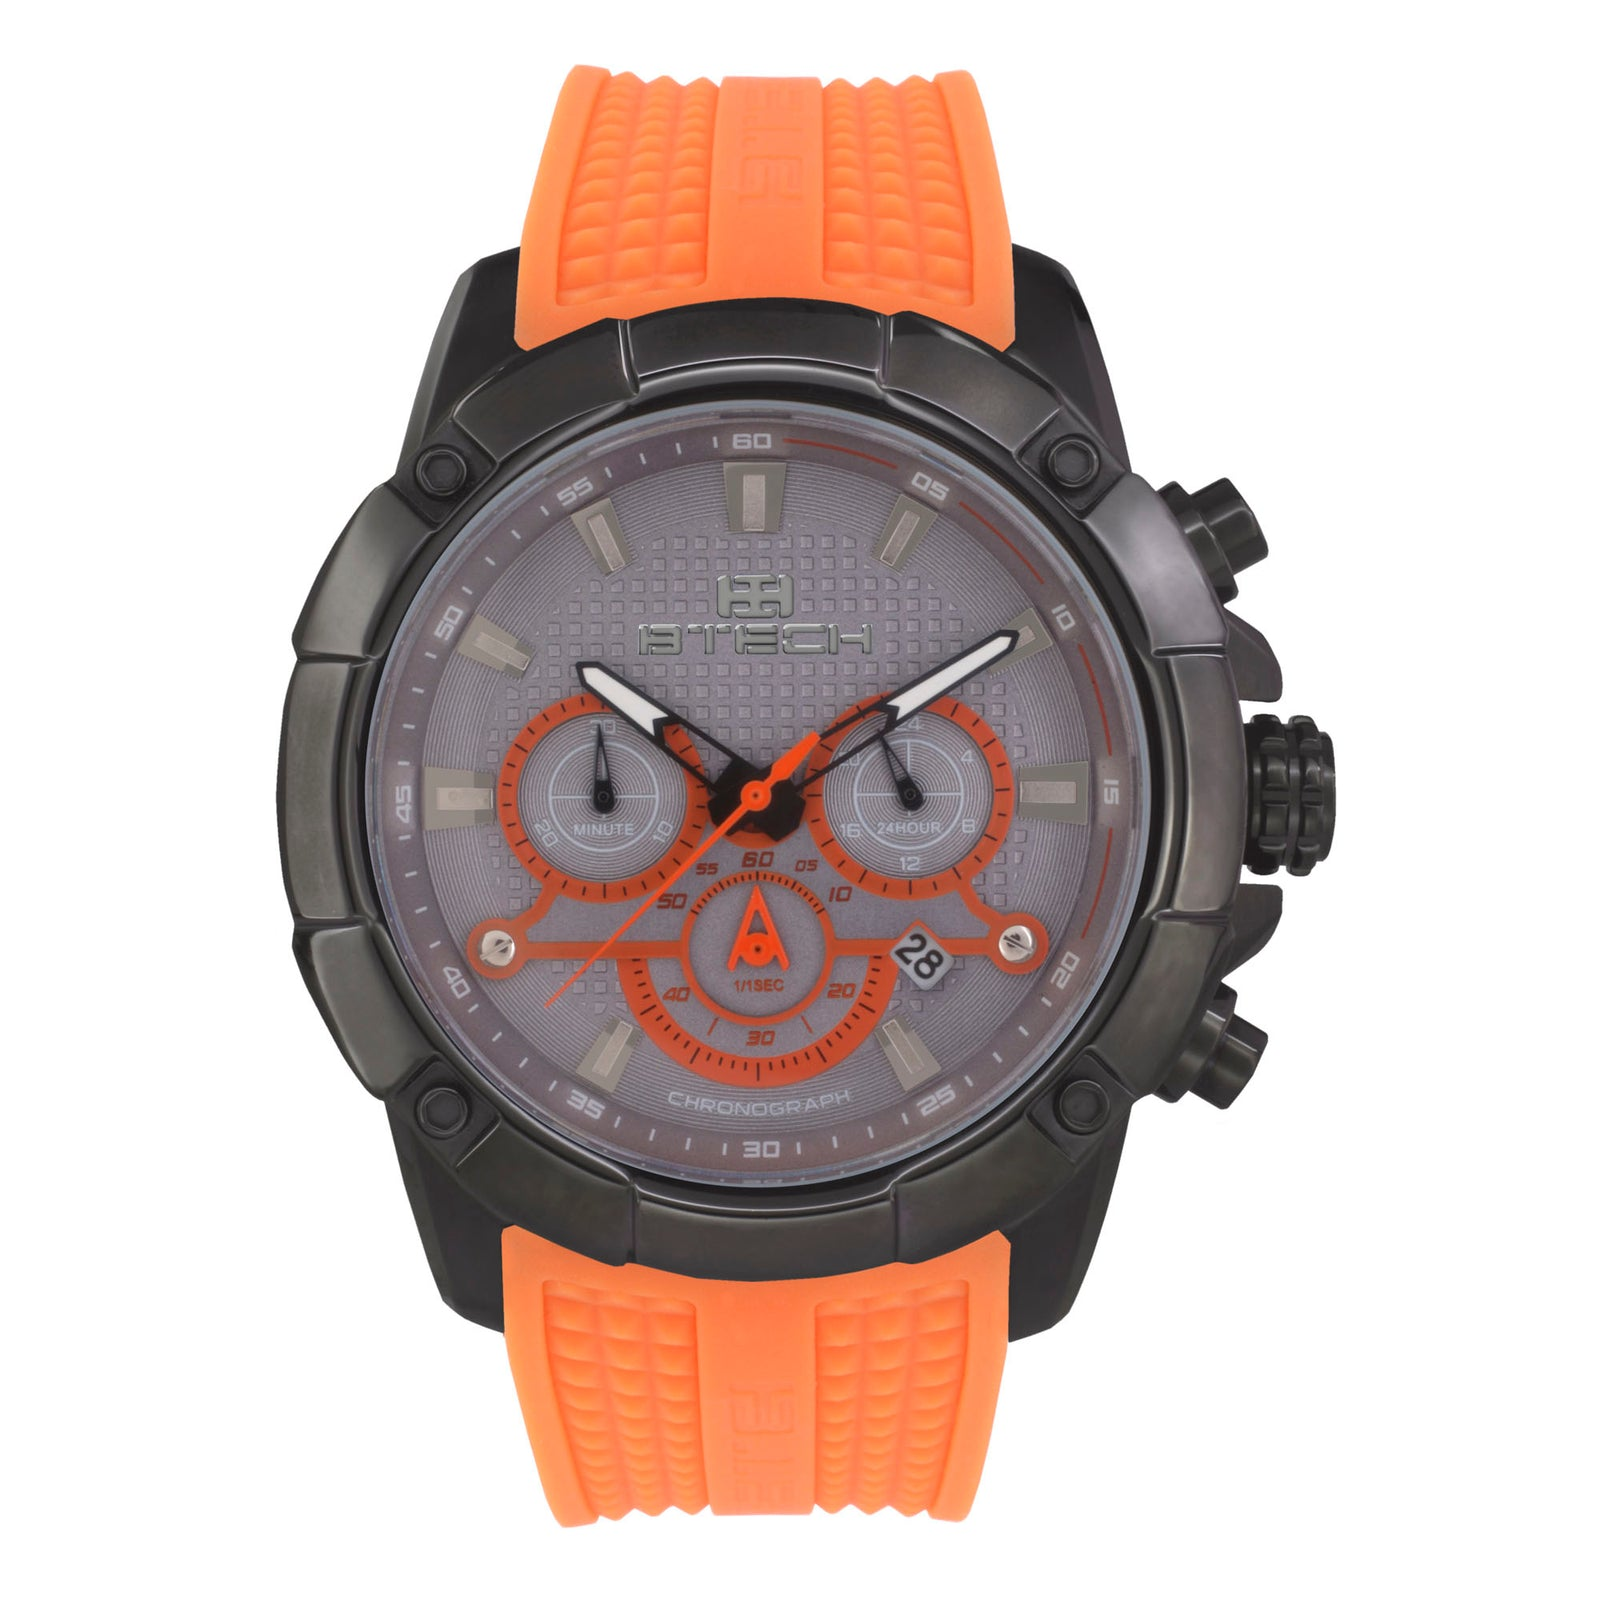 Delta Chrono Orange Unisex Watch (BT-CD-388-09)